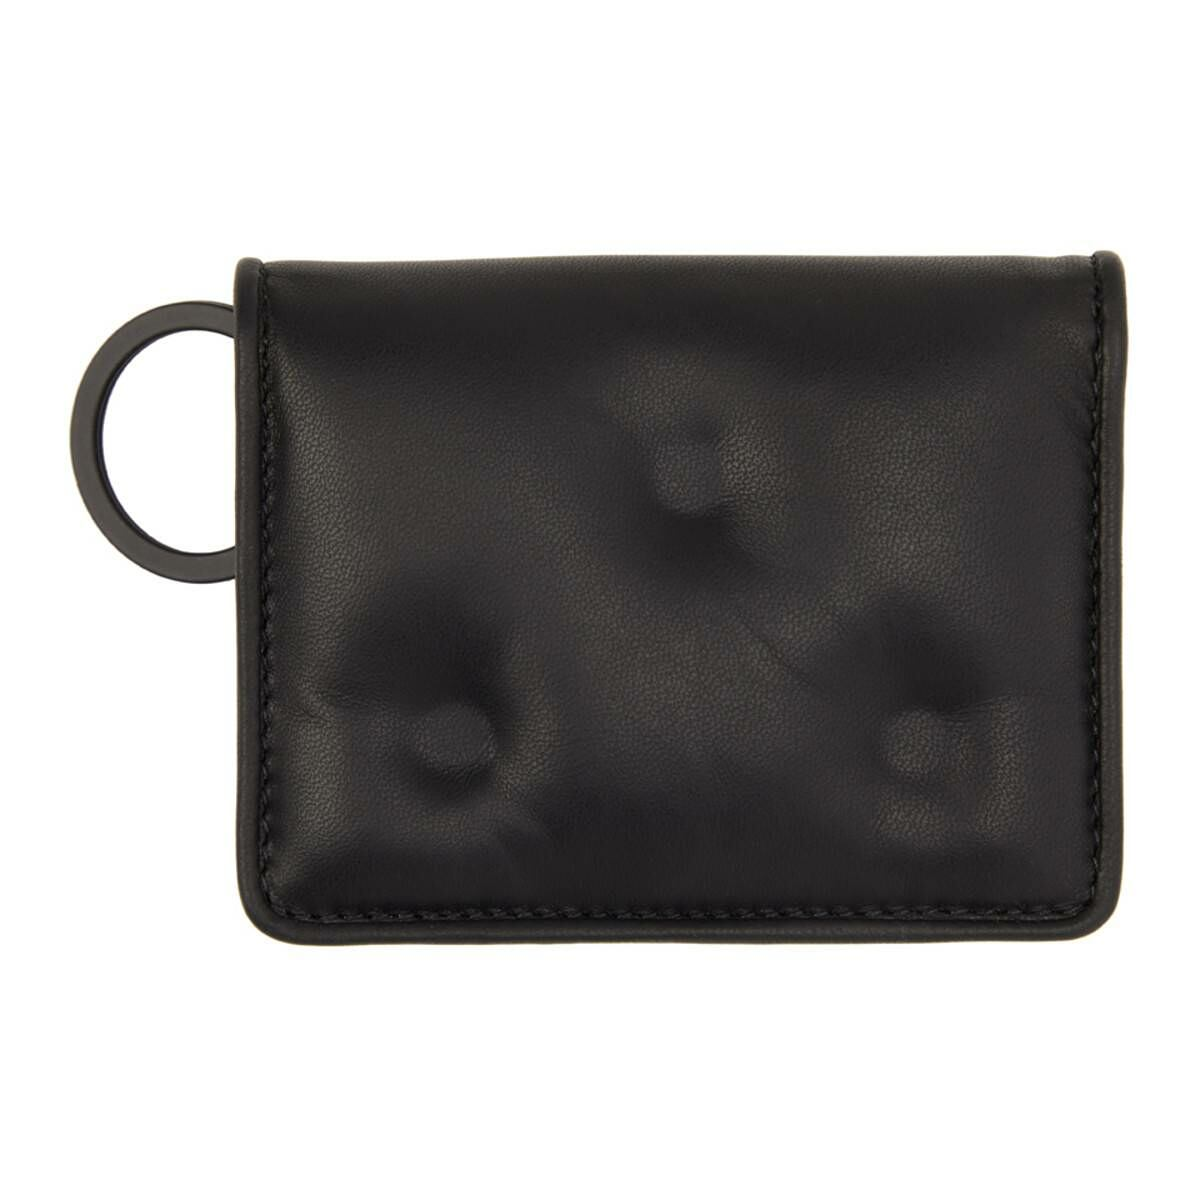 Maison Margiela Black Glam Slam Card Holder Ssense USA MEN Men ACCESSORIES Mens WALLETS